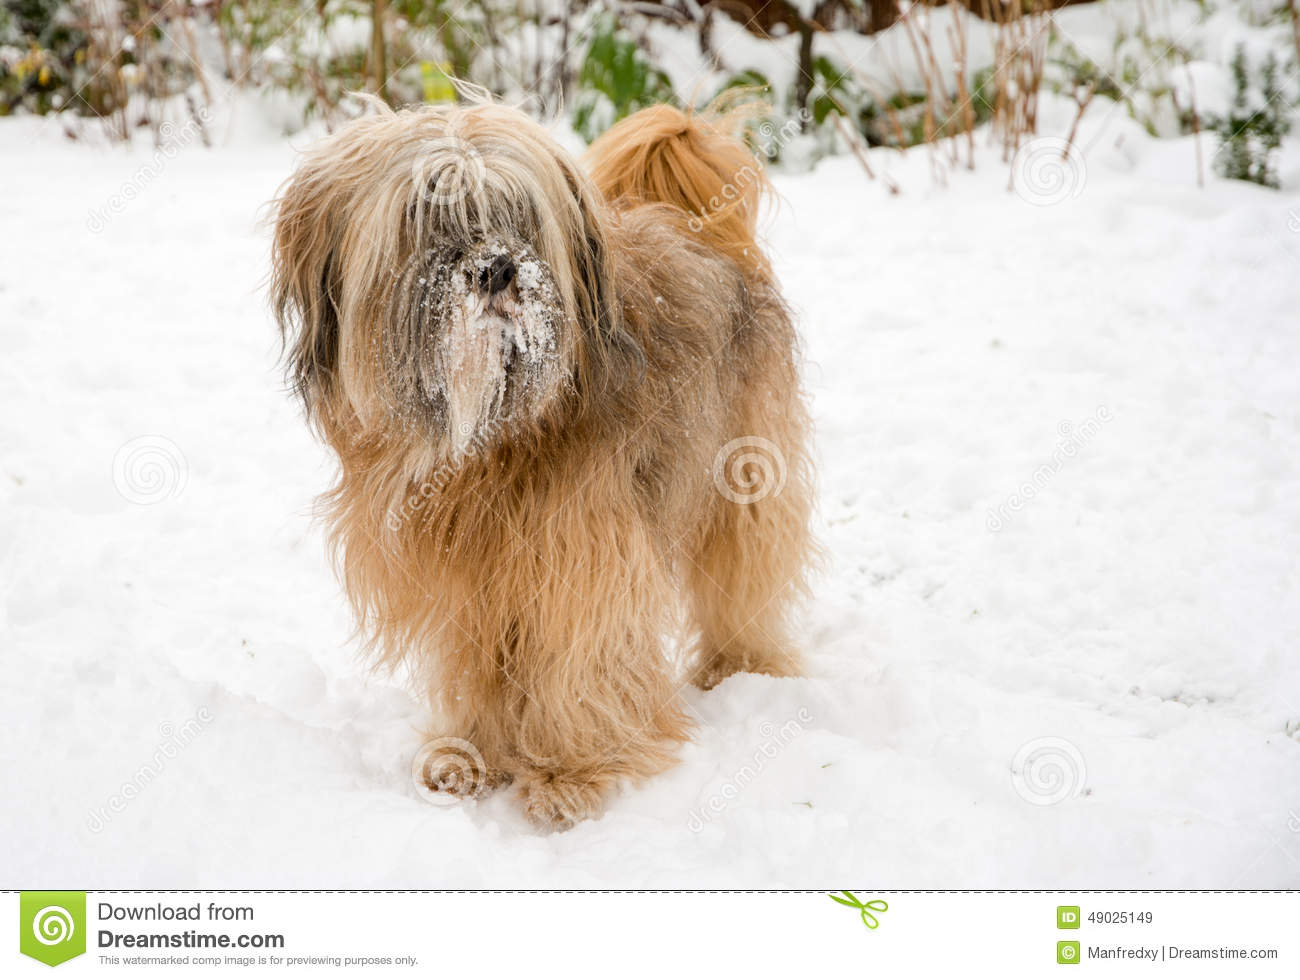 Brown long haired tibetan terrier dog standing in the snow.